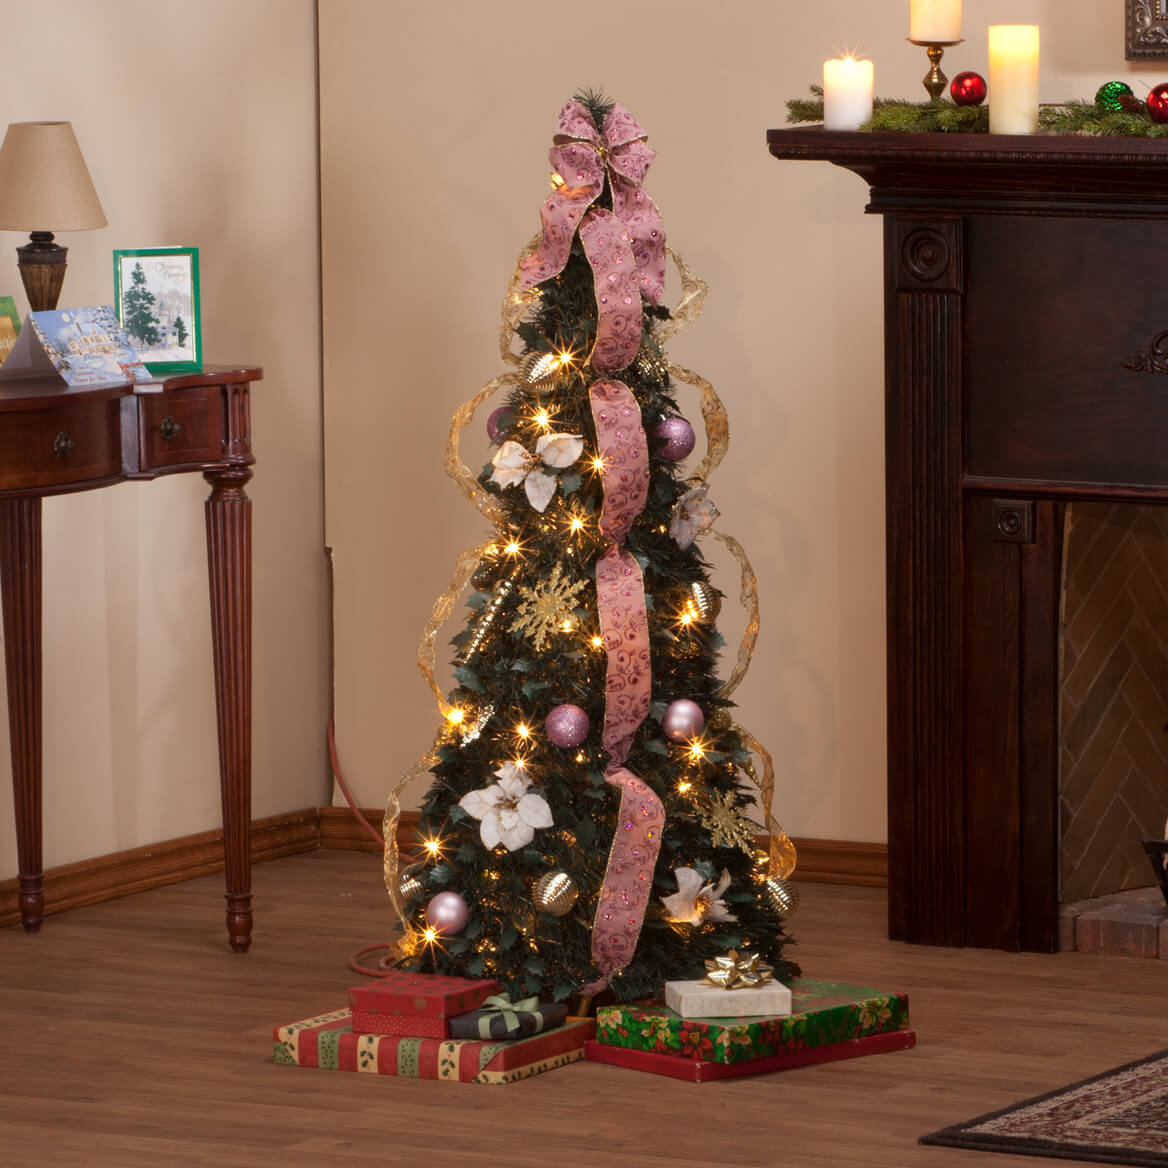 4' Victorian Style Pull-Up Tree by Holiday Peak™-356212